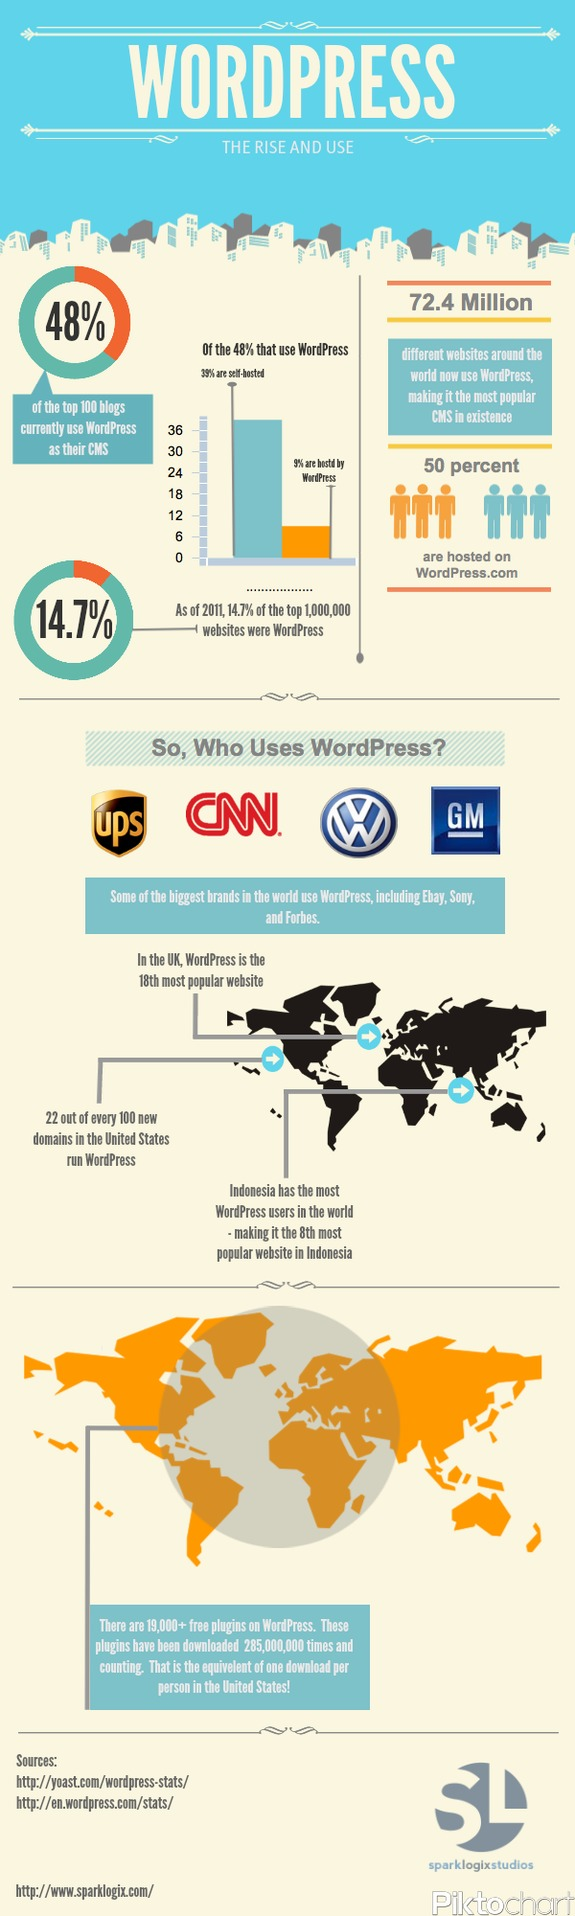 Wordpress: The Rise and Use